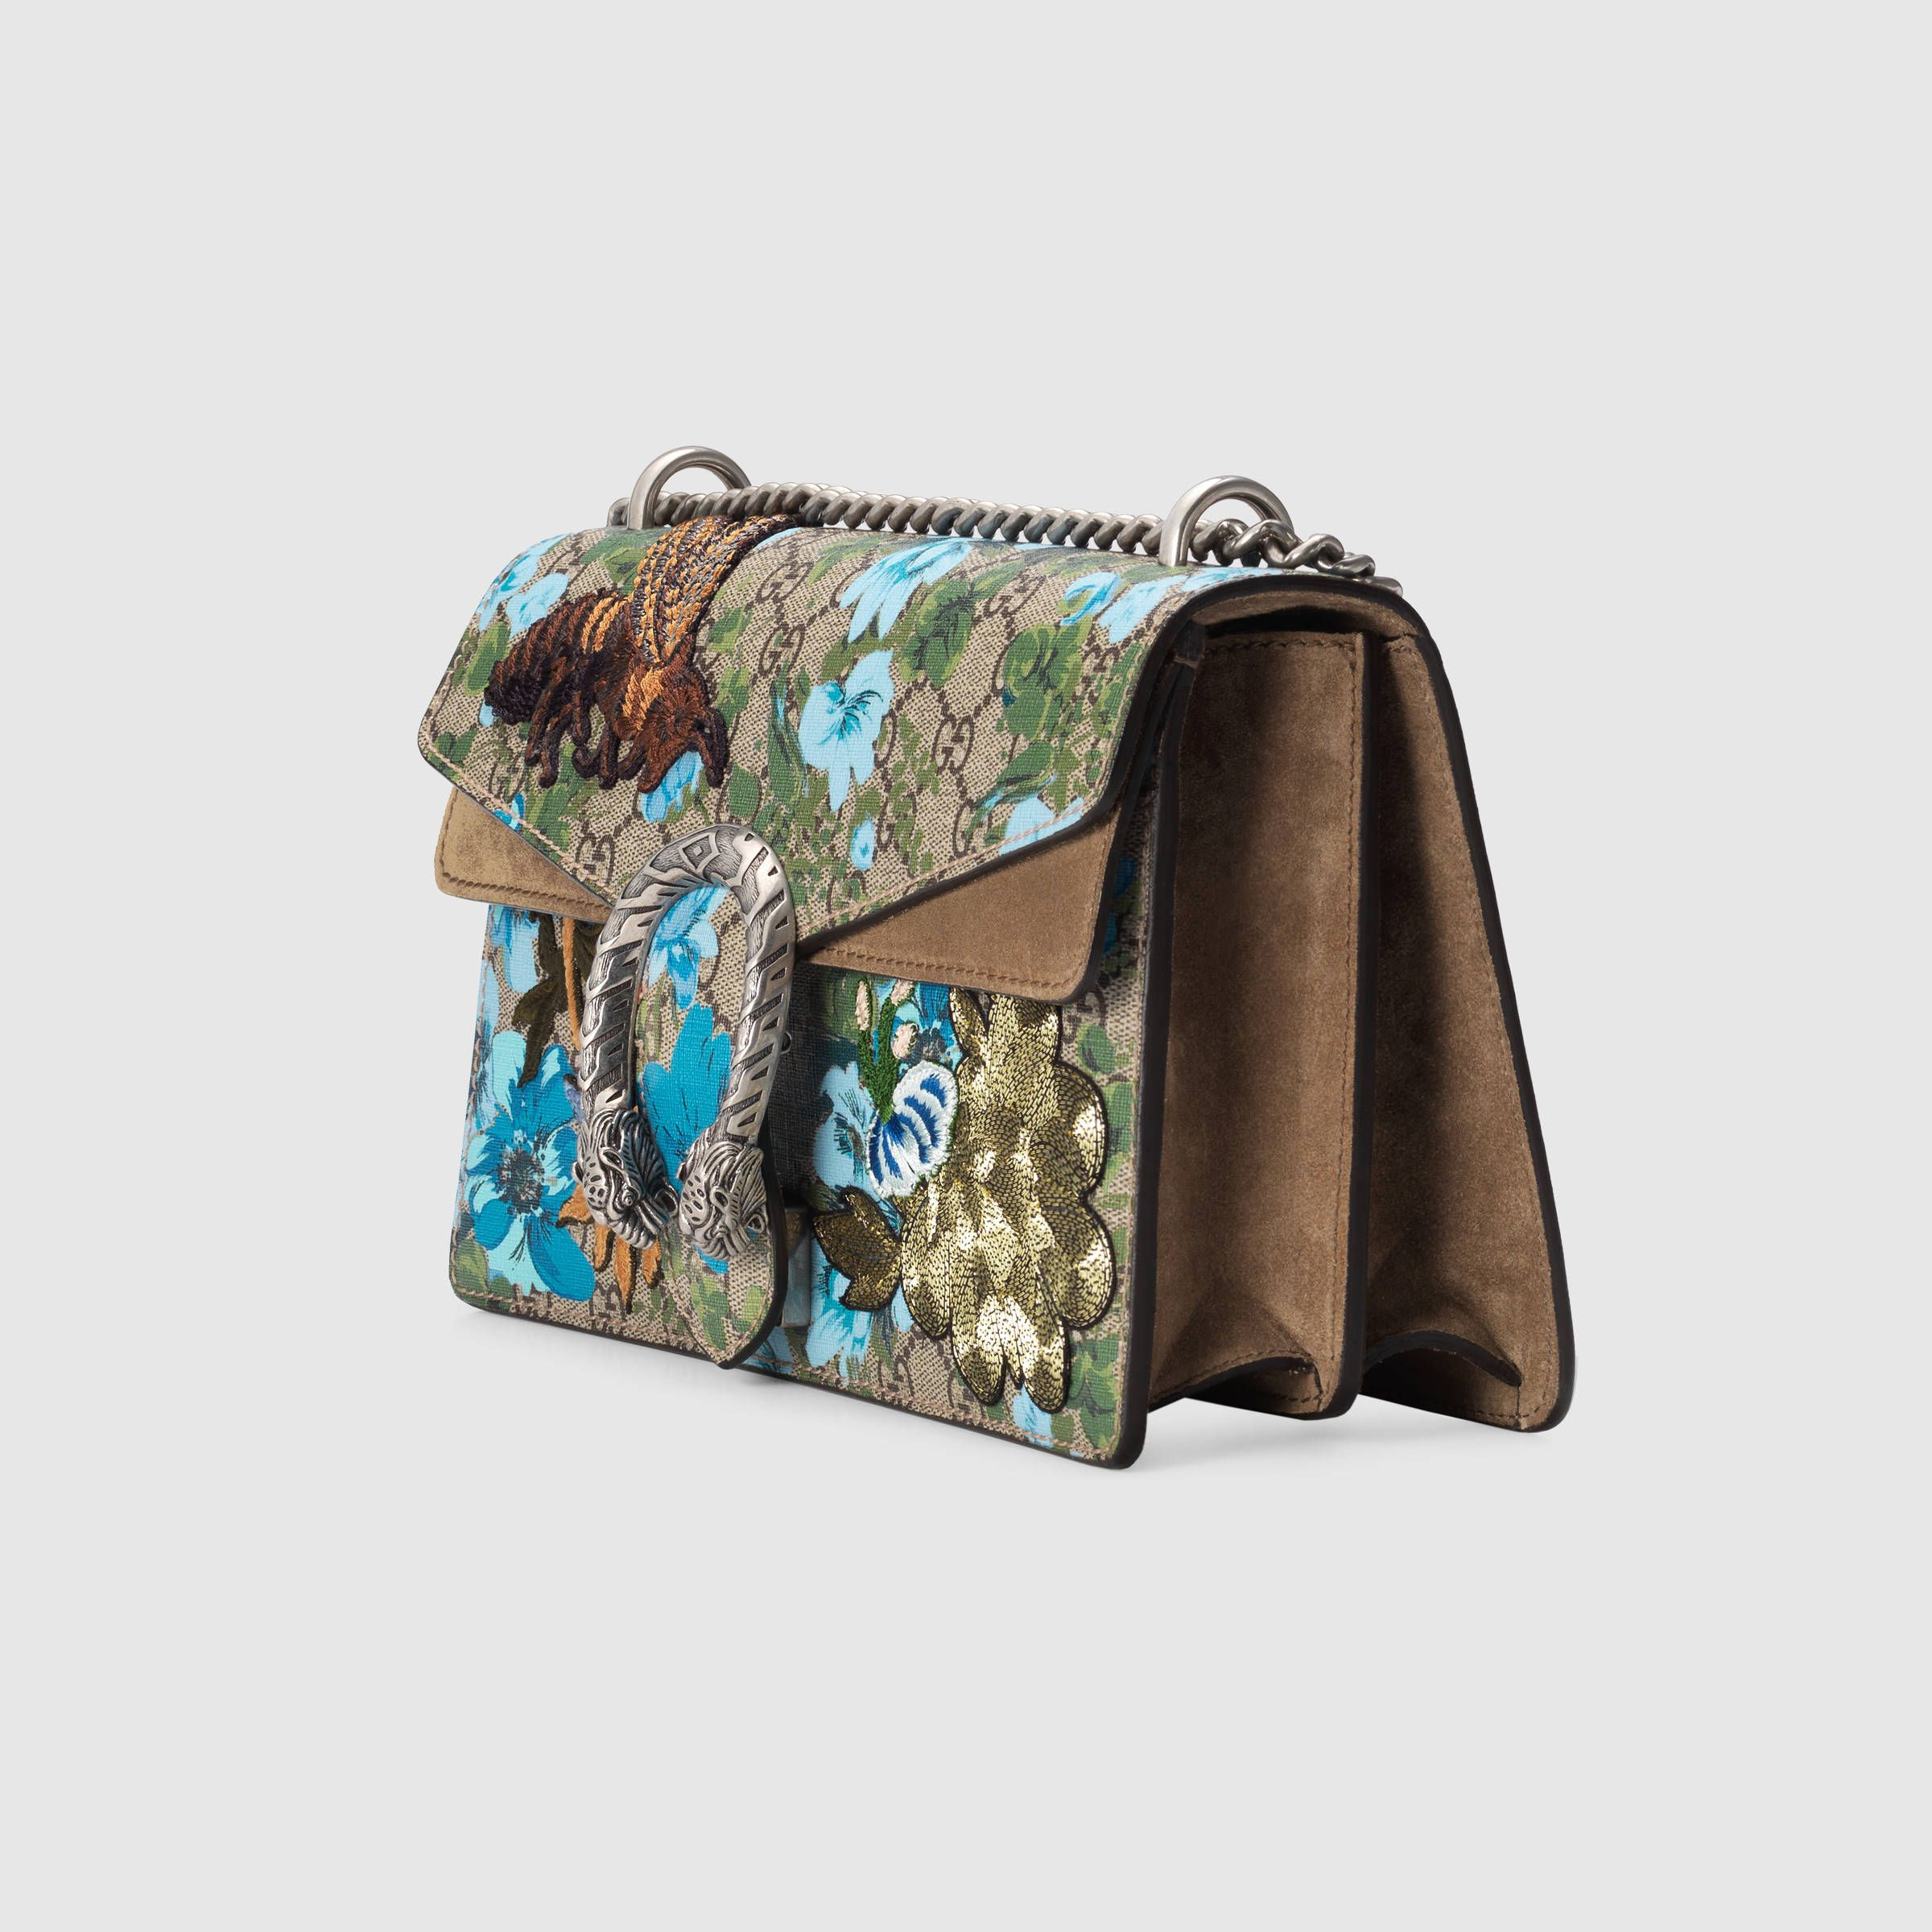 66acab69e04 Gucci Women - Gucci Dionysus Structured Beige Ebony GG Supreme canvas  shoulder bag w Painted Flowers and patches w taupe suede on the sides -   3